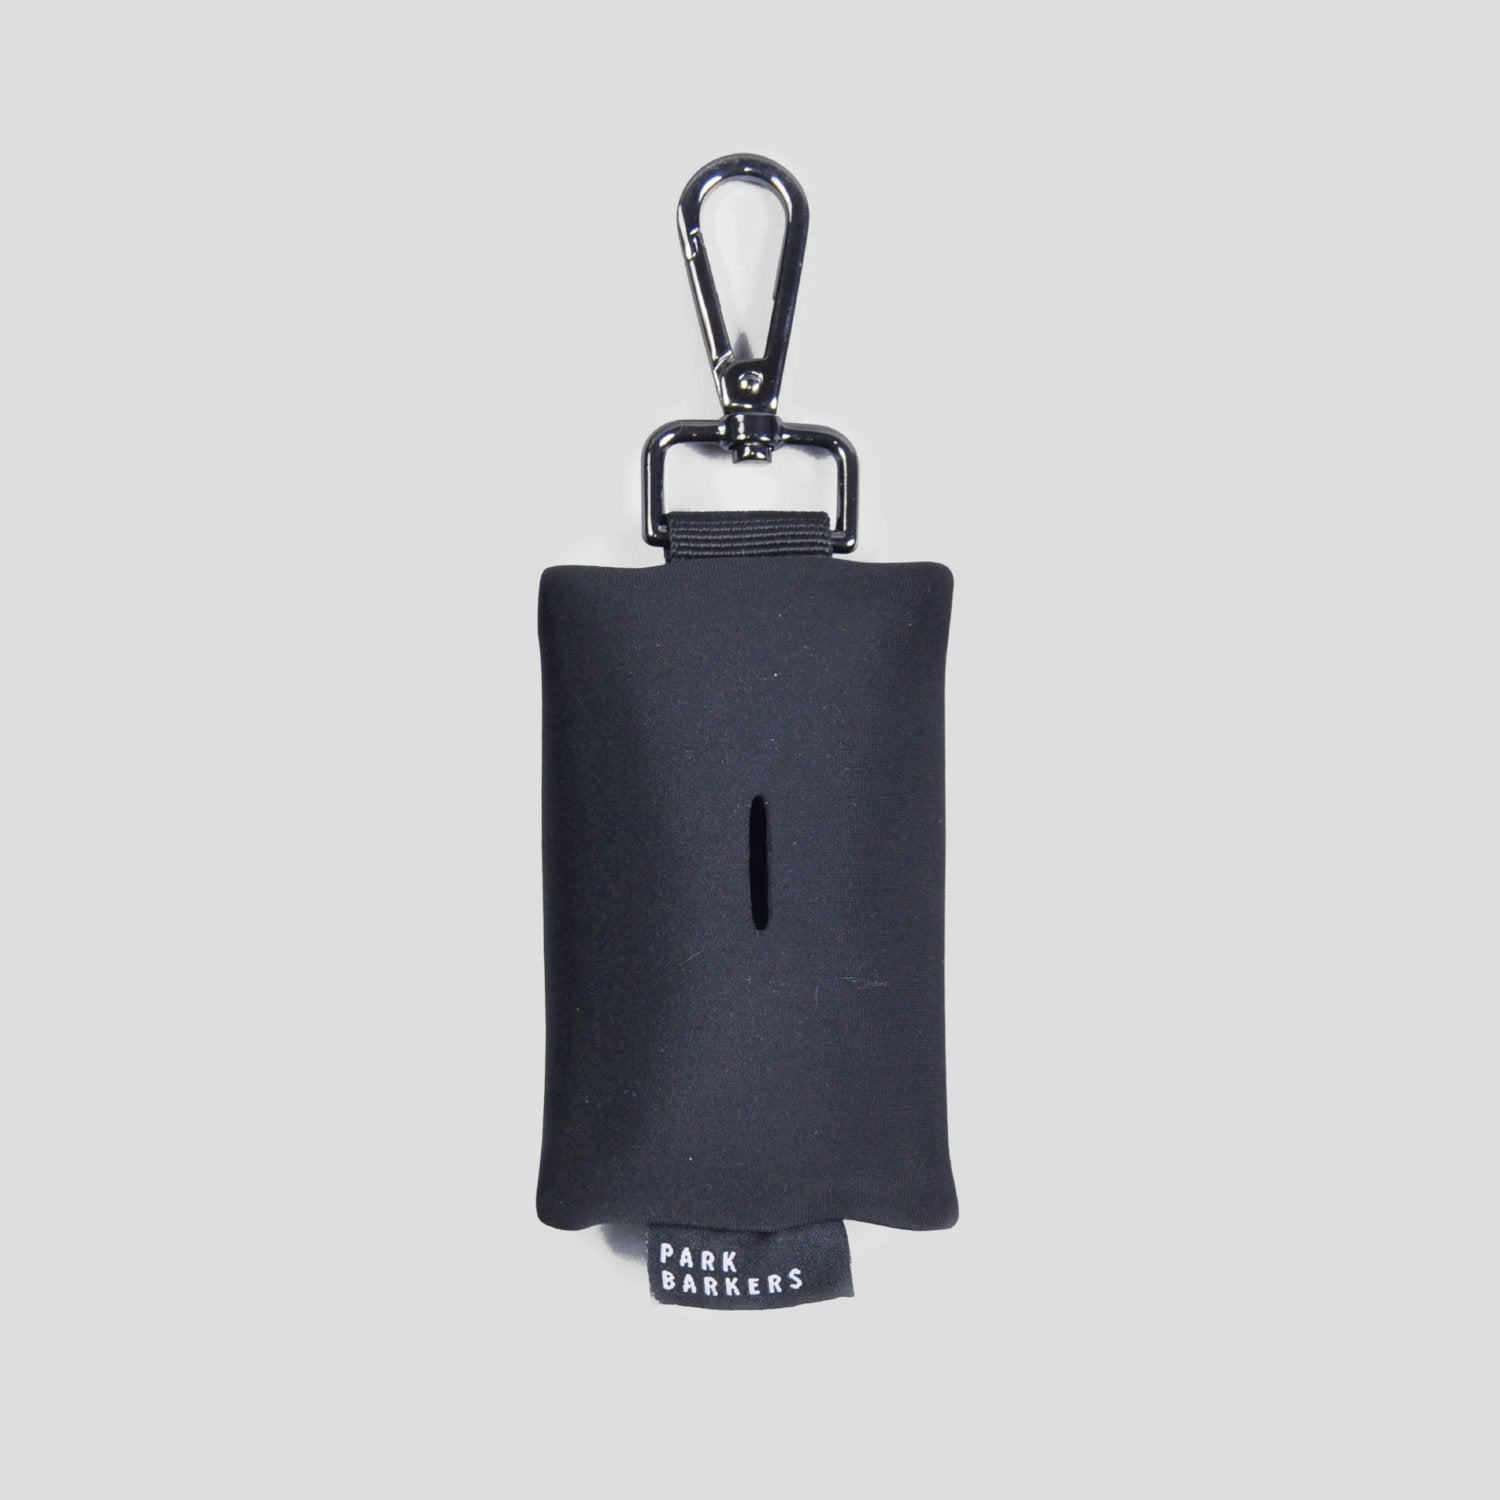 Park Barkers Black Yoyogi Dog Poop Bag Holder